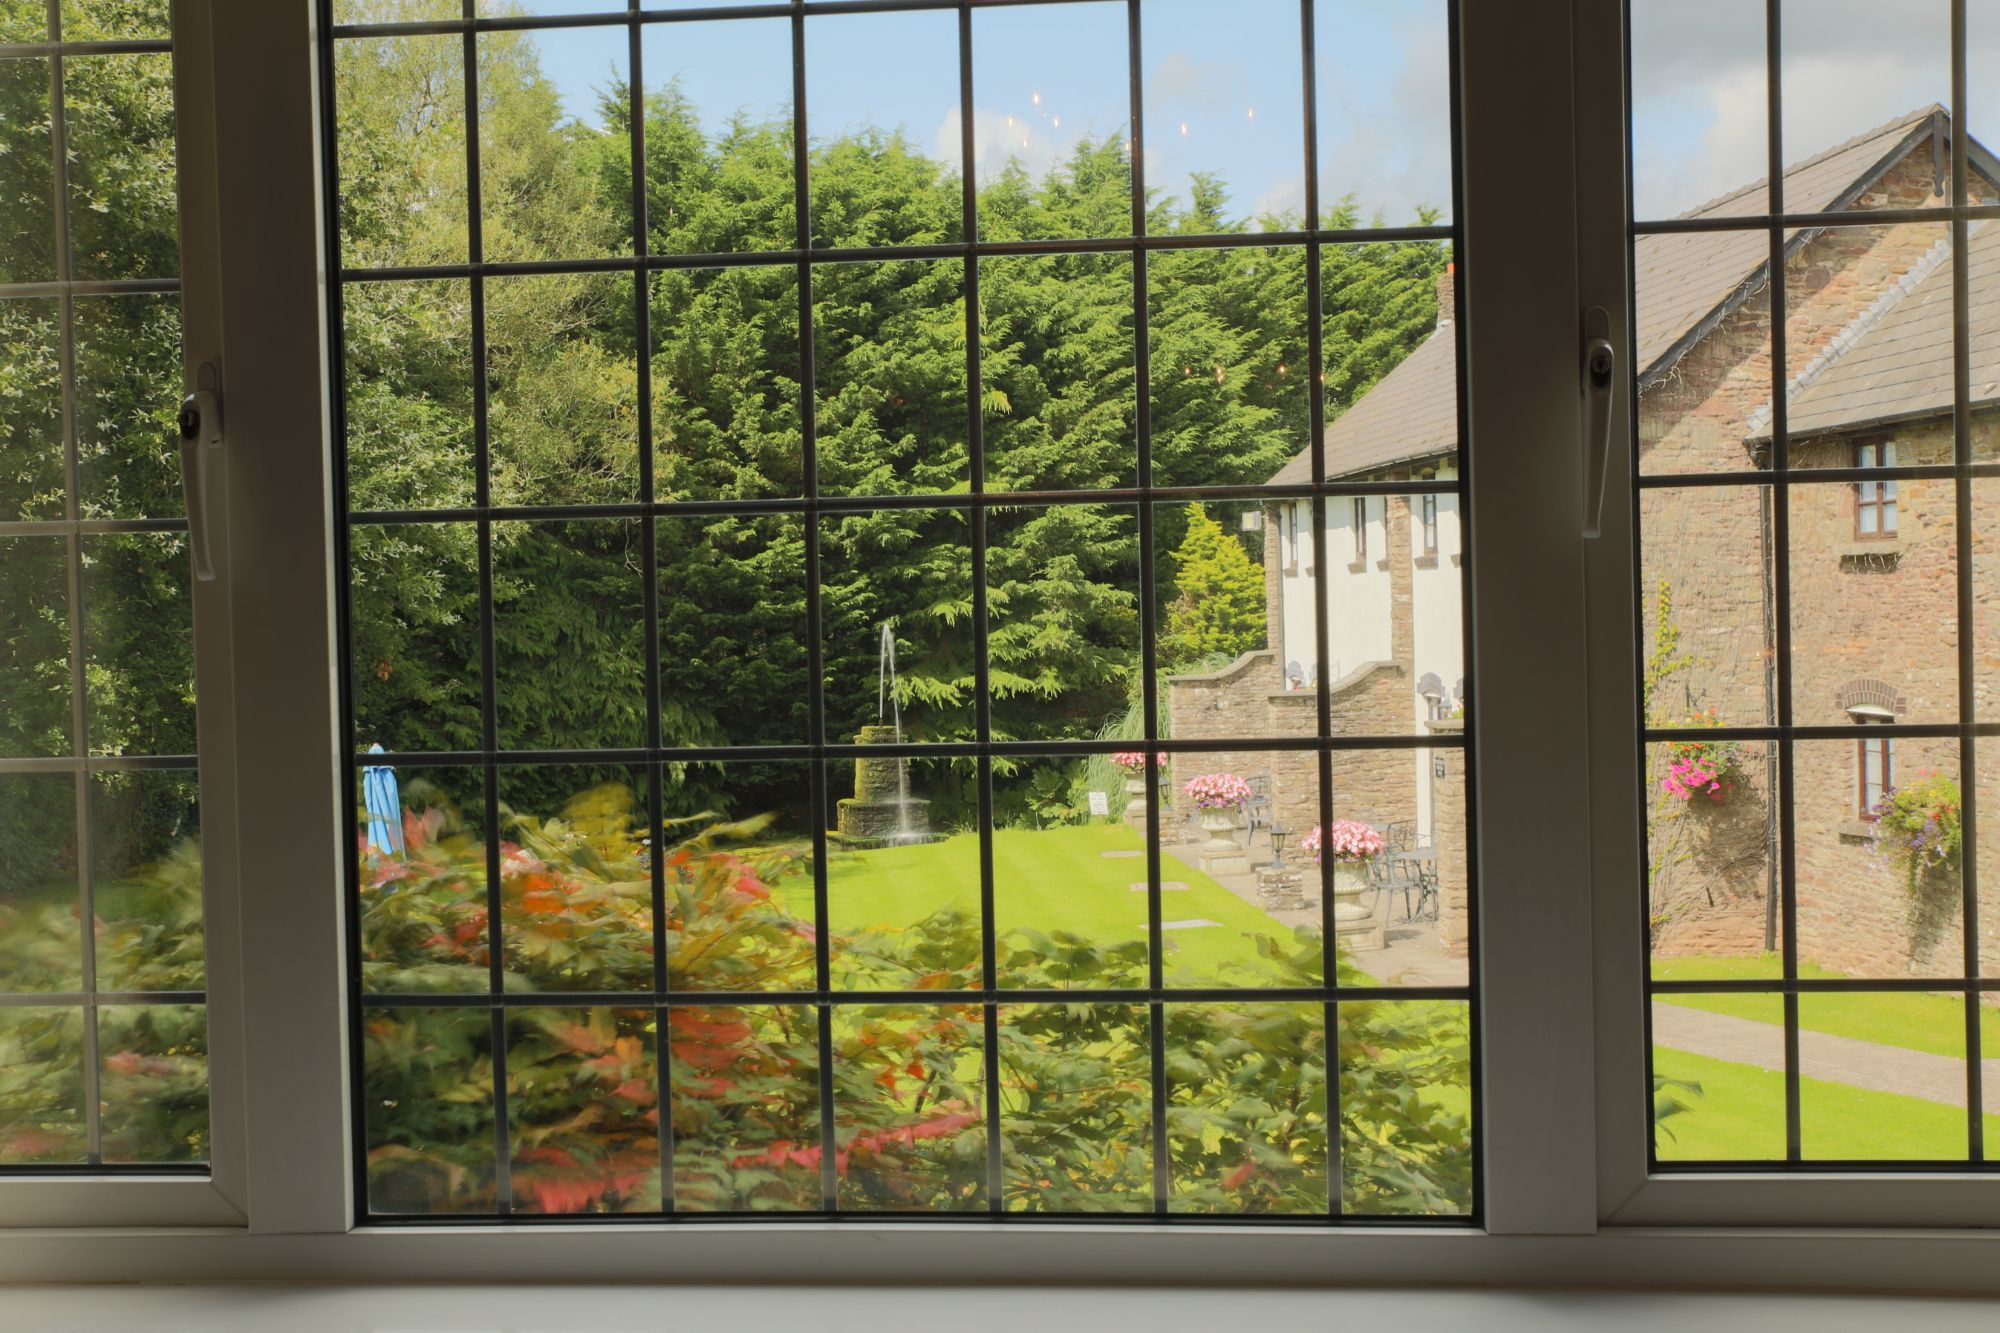 example accommodation view at the The Greyhound Inn